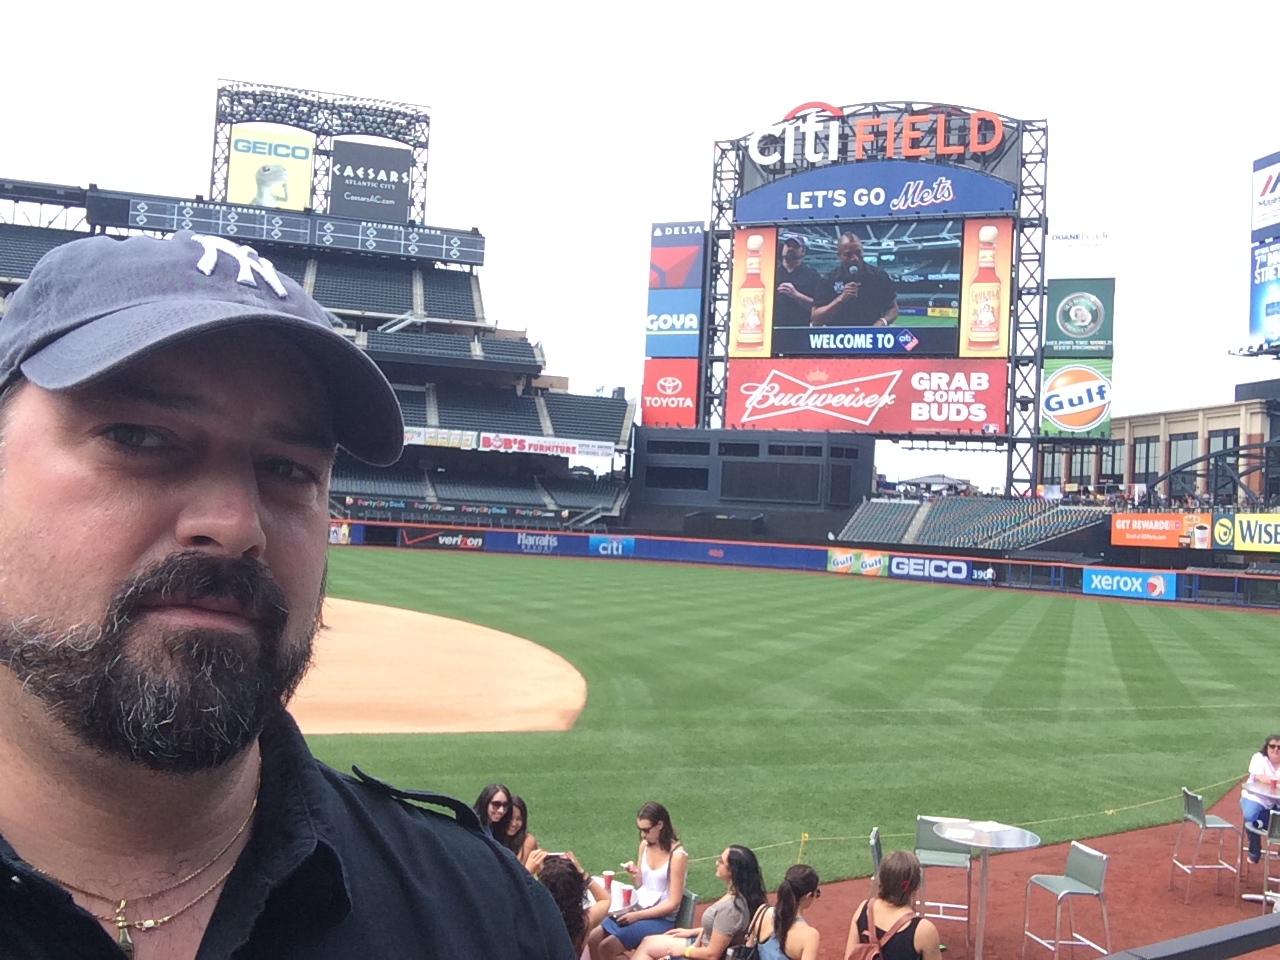 bacon_and_beer_classic_nyc_citi_field_2014_burger_conquest_winners_photos_information_9007